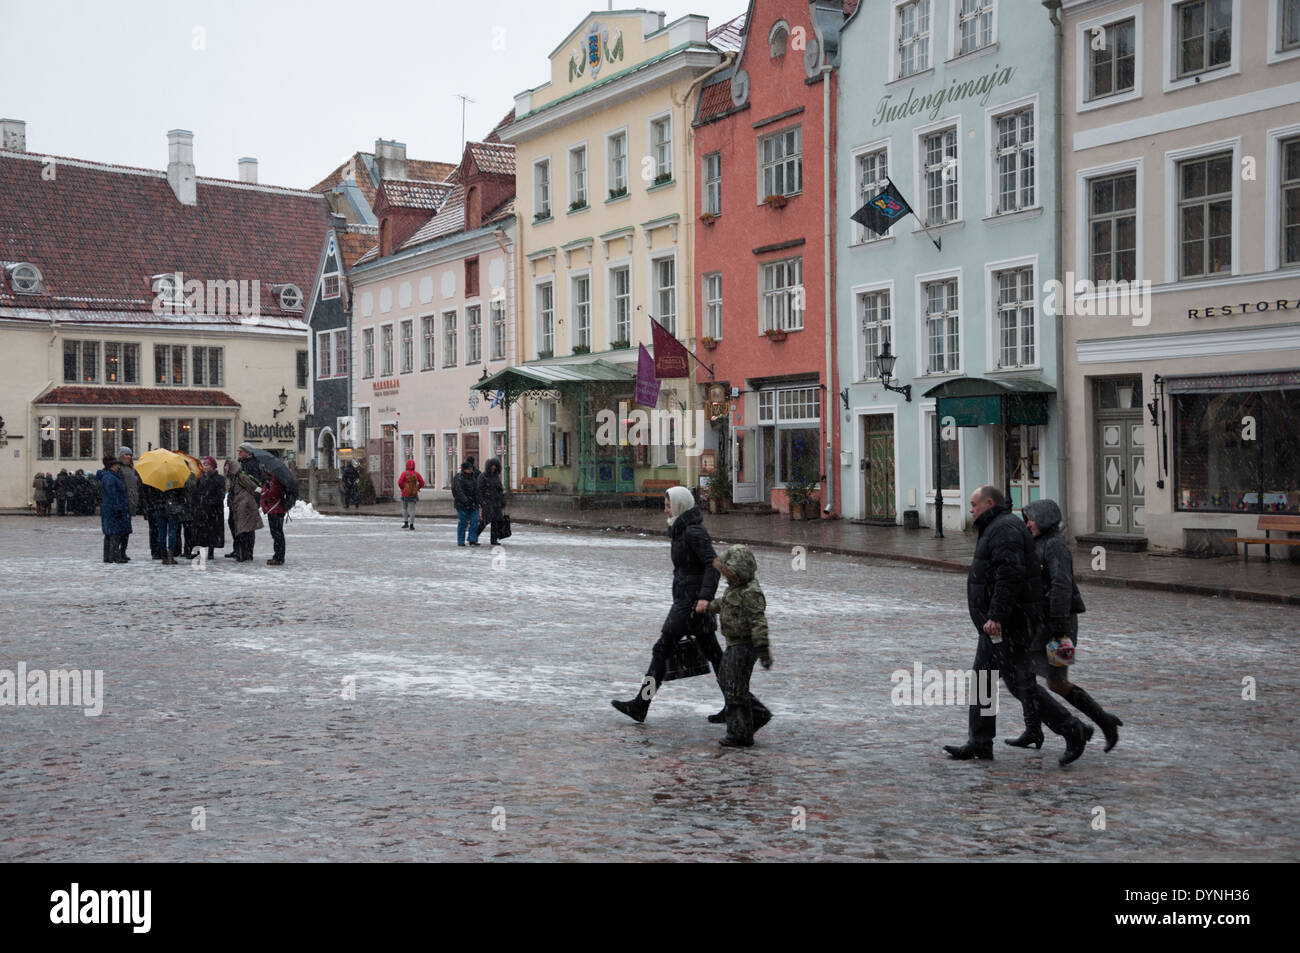 A cold wet day in the old town in Tallinn Estonia - Stock Image